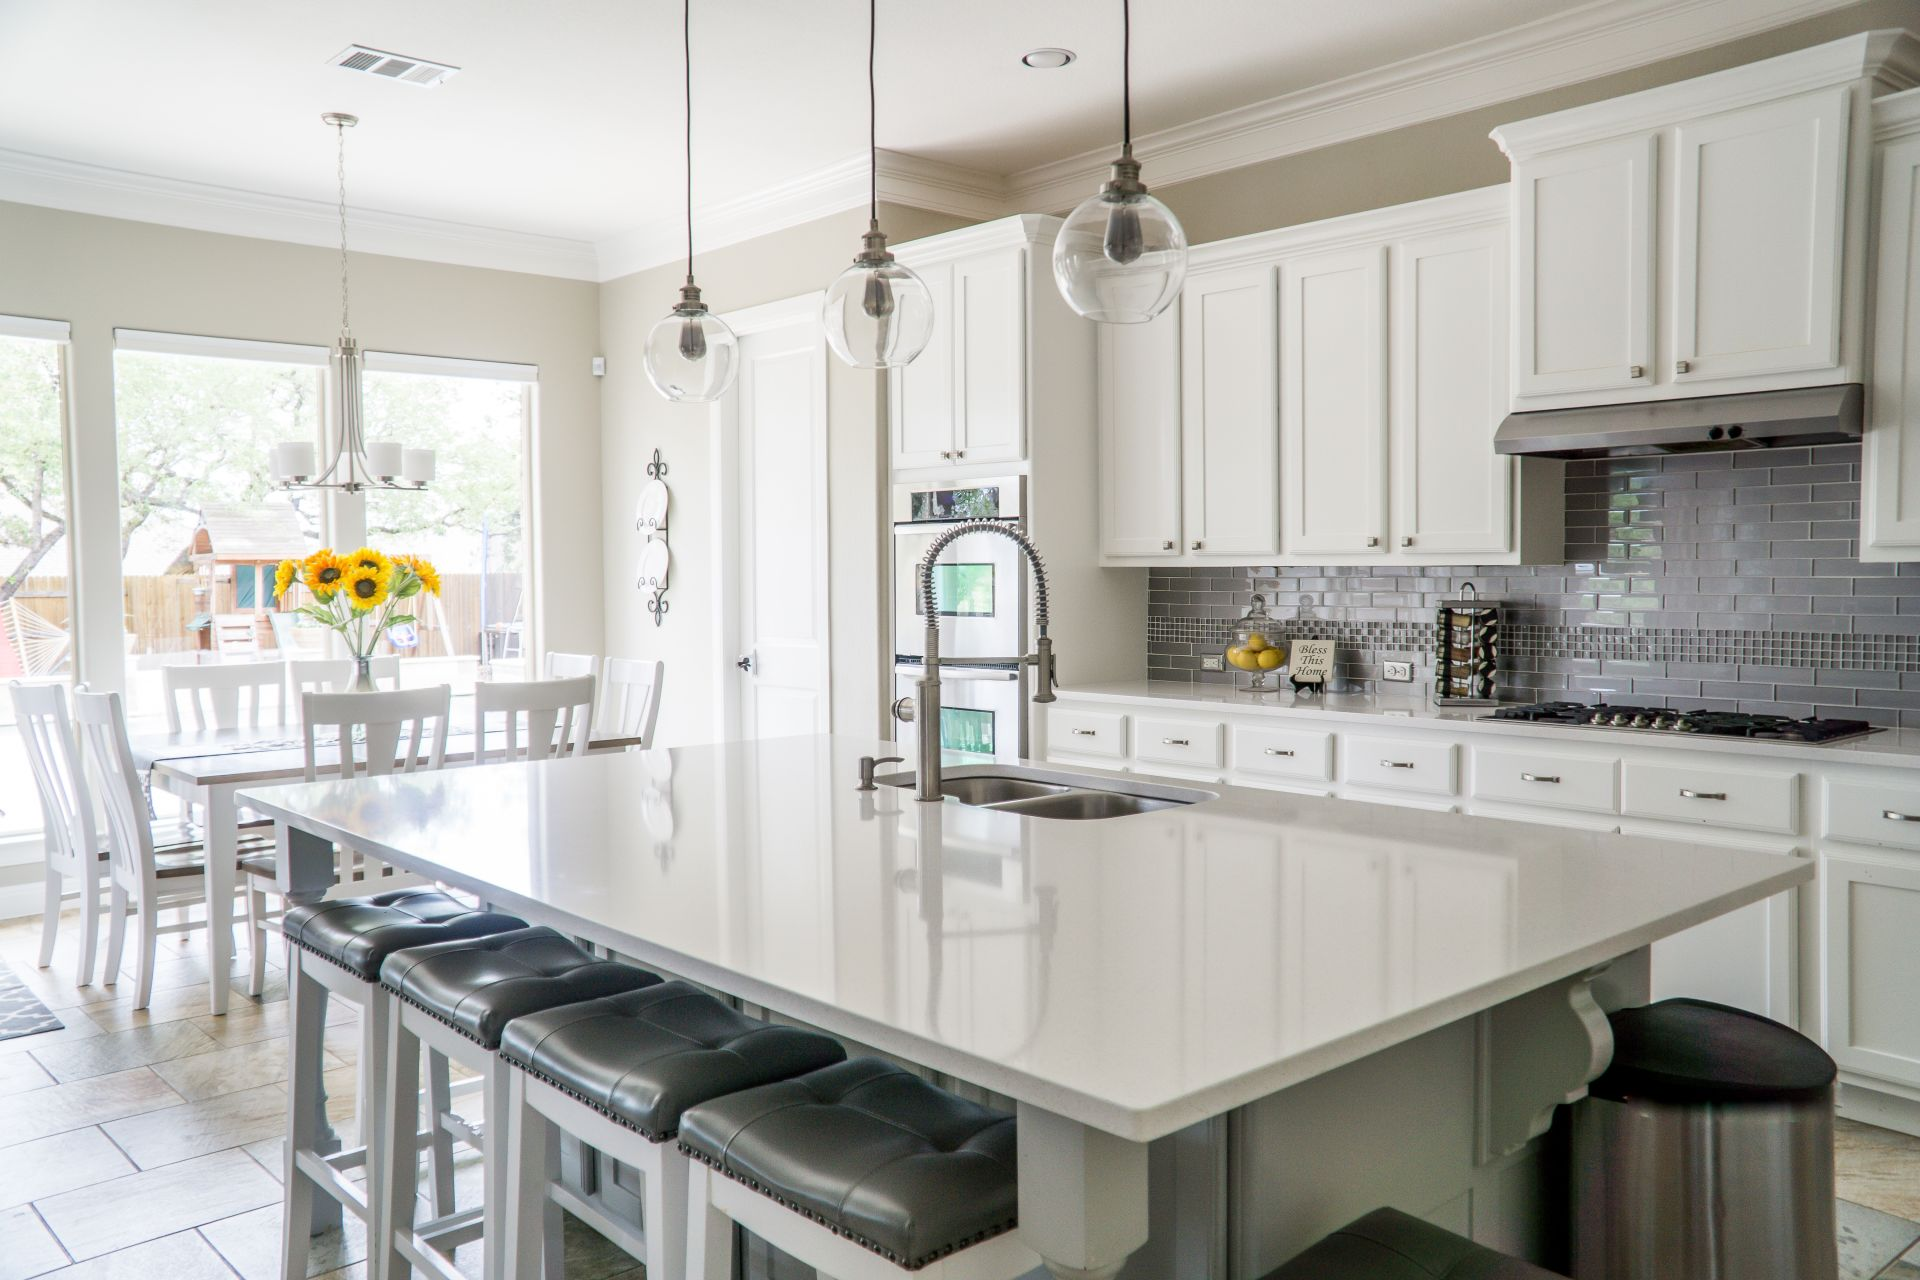 Amberwoods Homes for Sale